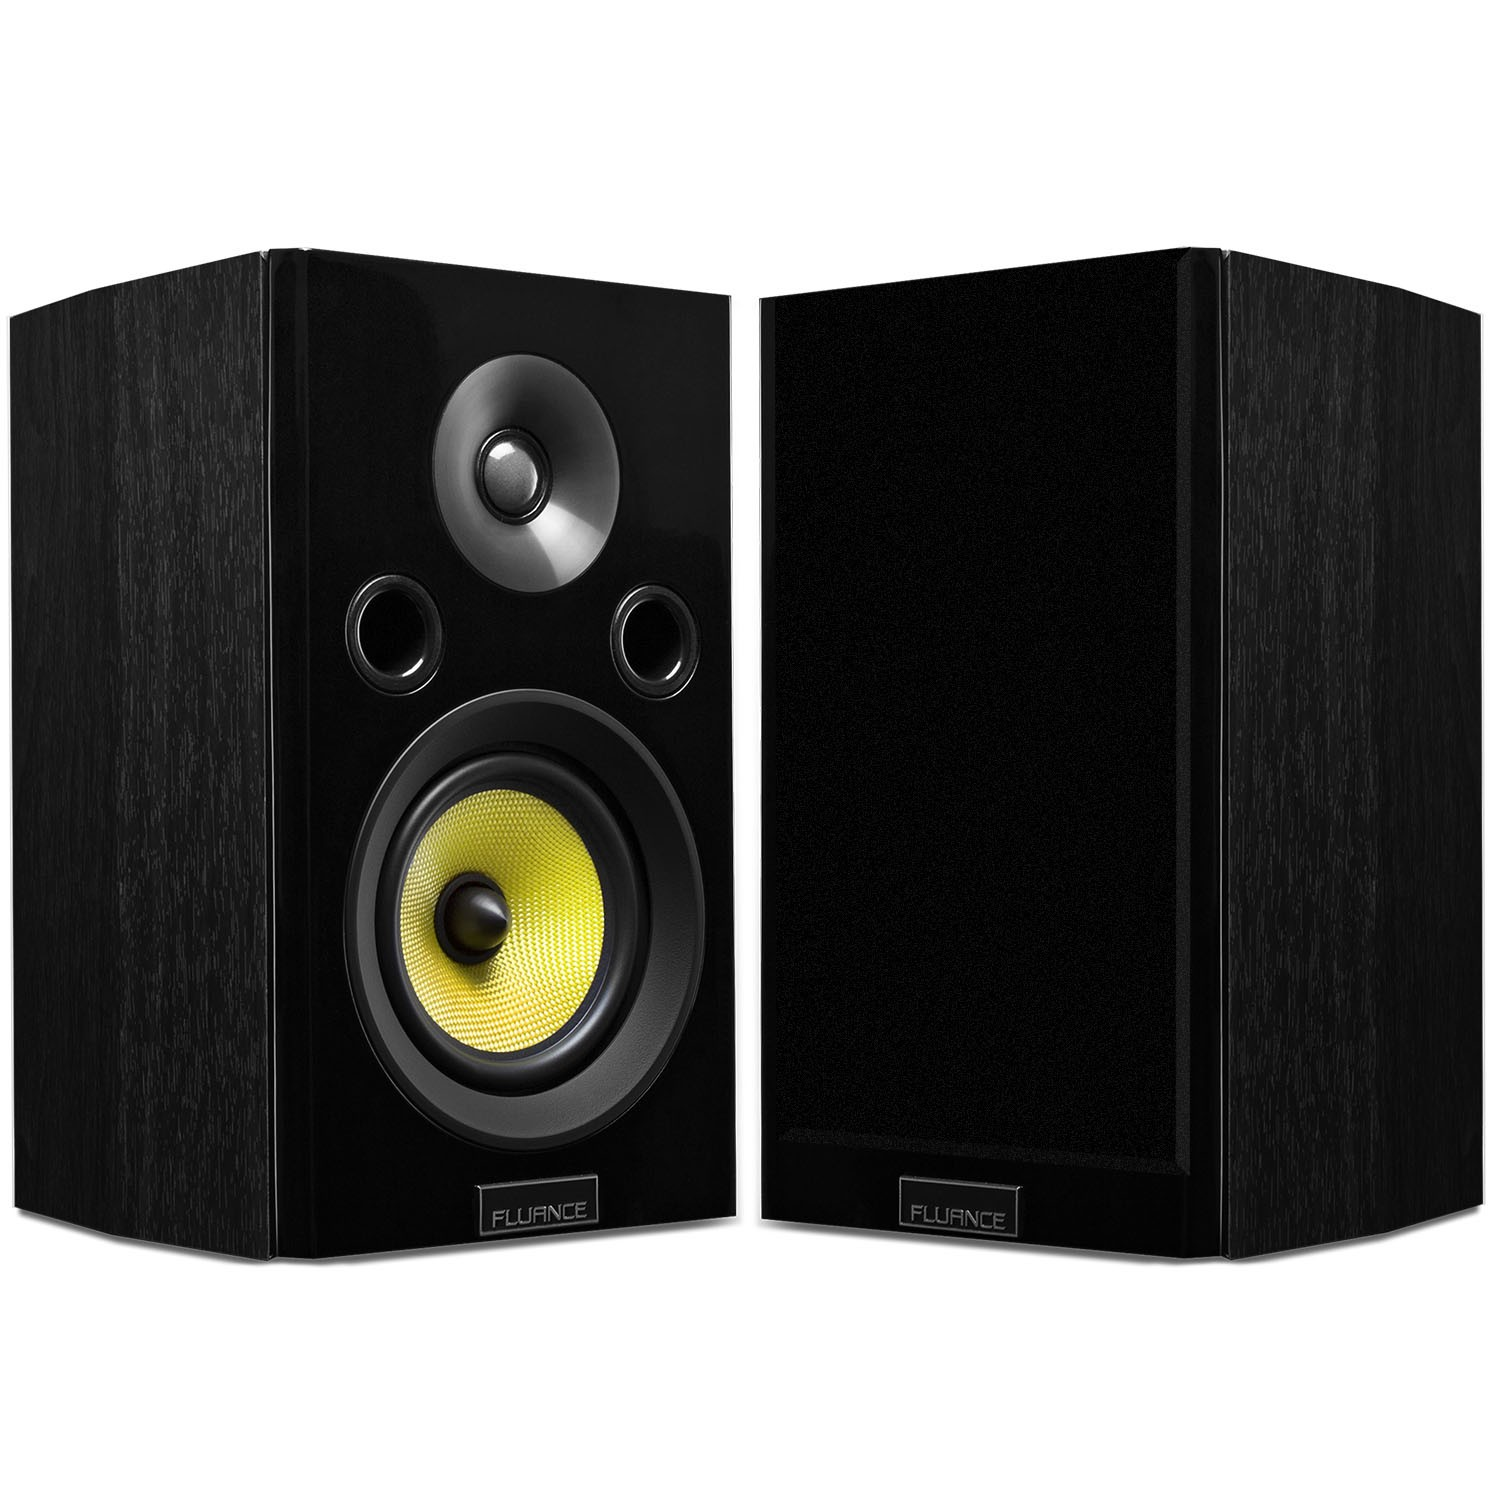 Fluance Signature Series Black Ash Bookshelf Speakers Alternate